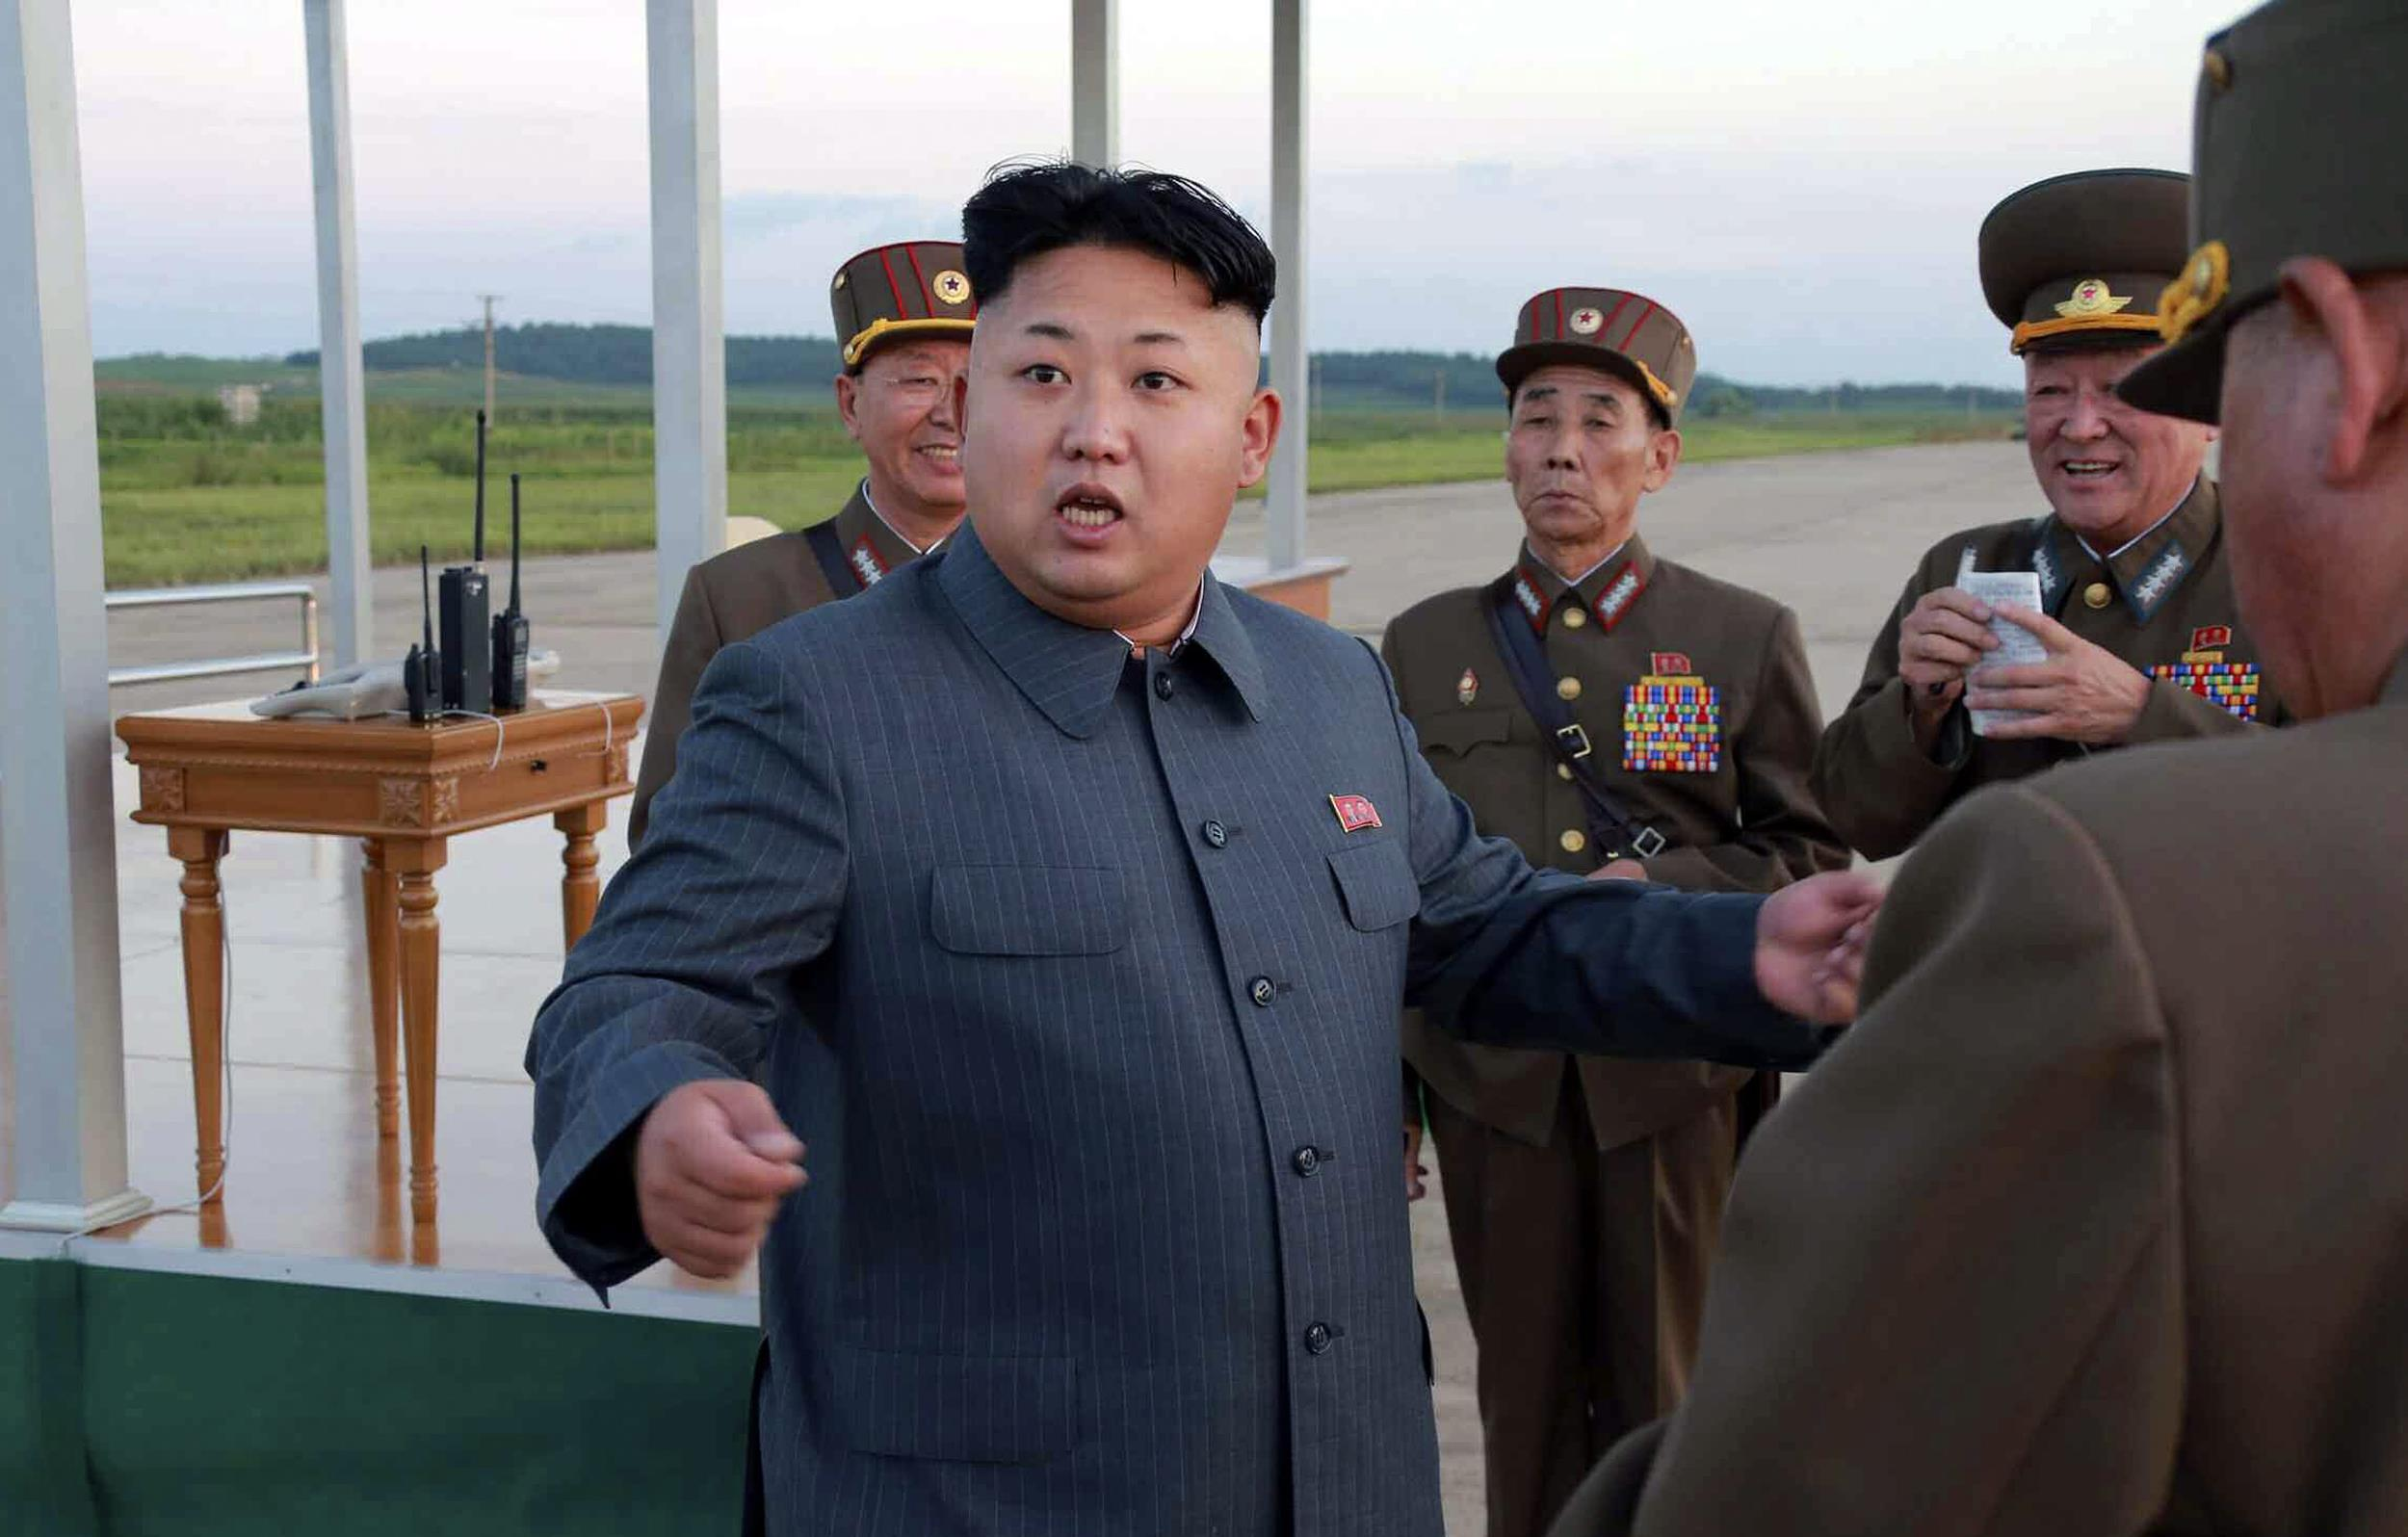 Kim Jong Un Gives The World A Sneak Peak At His Weapons Of War [VIDEO]